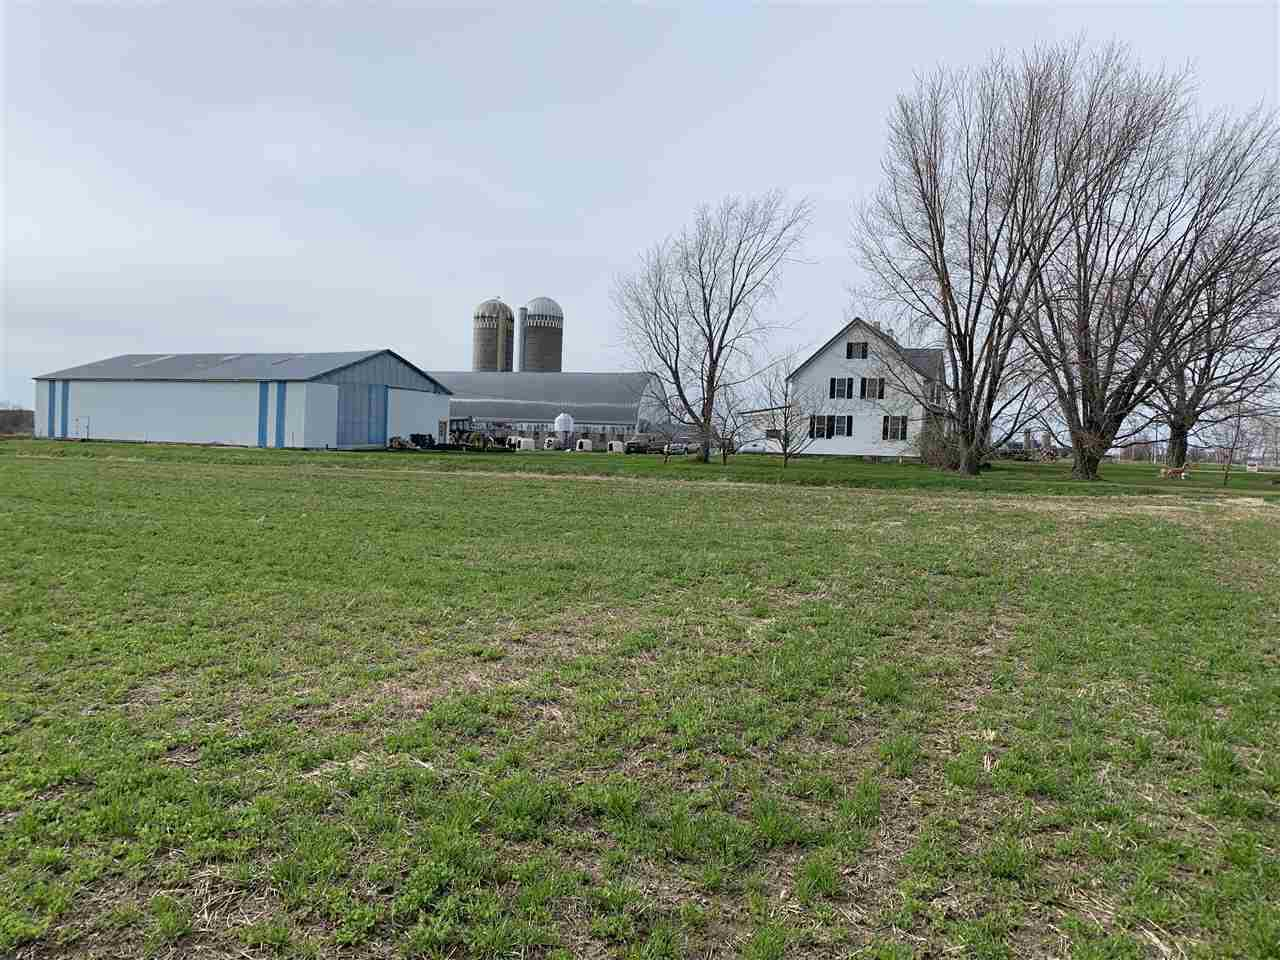 Property?s Visual Description:    FORMER DAIRY FARM.  WITHEE LOAM SOIL.  LAND     IS CONTIGUOUS.  FRONTAGE ON BLACK TOP ROAD.    12 ACRE HARD MAPLE WOOD LOT IDEAL FOR TAPPING.        SPRING FED POND.  IDEAL HUNTING GROVES.   Property Location:    SECTION 21 & 22-T29N-R3E Town Of:  JOHNSON County:  MARATHON School District: ATHENS Zoning:  AG Property Size: Acres:    193.78      TILLABLE: 103.29      WOODED/PASTURE Water Supply/Septic:      PRIVATE WELL. SEPTIC WITH DRAIN OUT. House:   2-STORY.  5 BEDROOM.  1 BATH.  FULL BASEMENT.                               ATTACHED 1 CAR GARAGE.  NEWER METAL ROOF.    VINYL SIDING.  COMBINATION WOOD/OIL FA HEAT.    ELECTRIC WATER HEATER.  110 AMP ELECTRICAL    ENTRANCE.  REFRIGERATOR AND STOVE    INCLUDED. Barn:  32?X110? GRADE A DAIRY BARN.  51 STALLS WITH    MATS.  NEWER METAL ROOF.  GRAVITY FLOW     MANURE SYSTEM.  TUNNEL VENTILATION.  GRADE    A MILK HOUSE WITH 4 UNIT BOUMATIC PIPELINE.     MUELLLER 500 GALLON BULK TANK.   Silo:   (2) ROCHESTER 18?X60? STAVE WITH UNLOADERS. Heifer Shed: 30?X40? 3-SIDED POLE TYPE WITH HEAD LOCKS.,Machine Shed: 44?X88? POLE TYPE WITH 24?X25? HEATED SHOP.    200 AMP ELECTRICAL ENTRANCE. Feed Bin:  8 TON. Calf Hutches: 25 COUNT.  INCLUDED. Stored Feed on Hand:    INCLUDED. Fuel Storage: (2) 300 GALLON BARRELS WITH PUMPS INCLUDED.